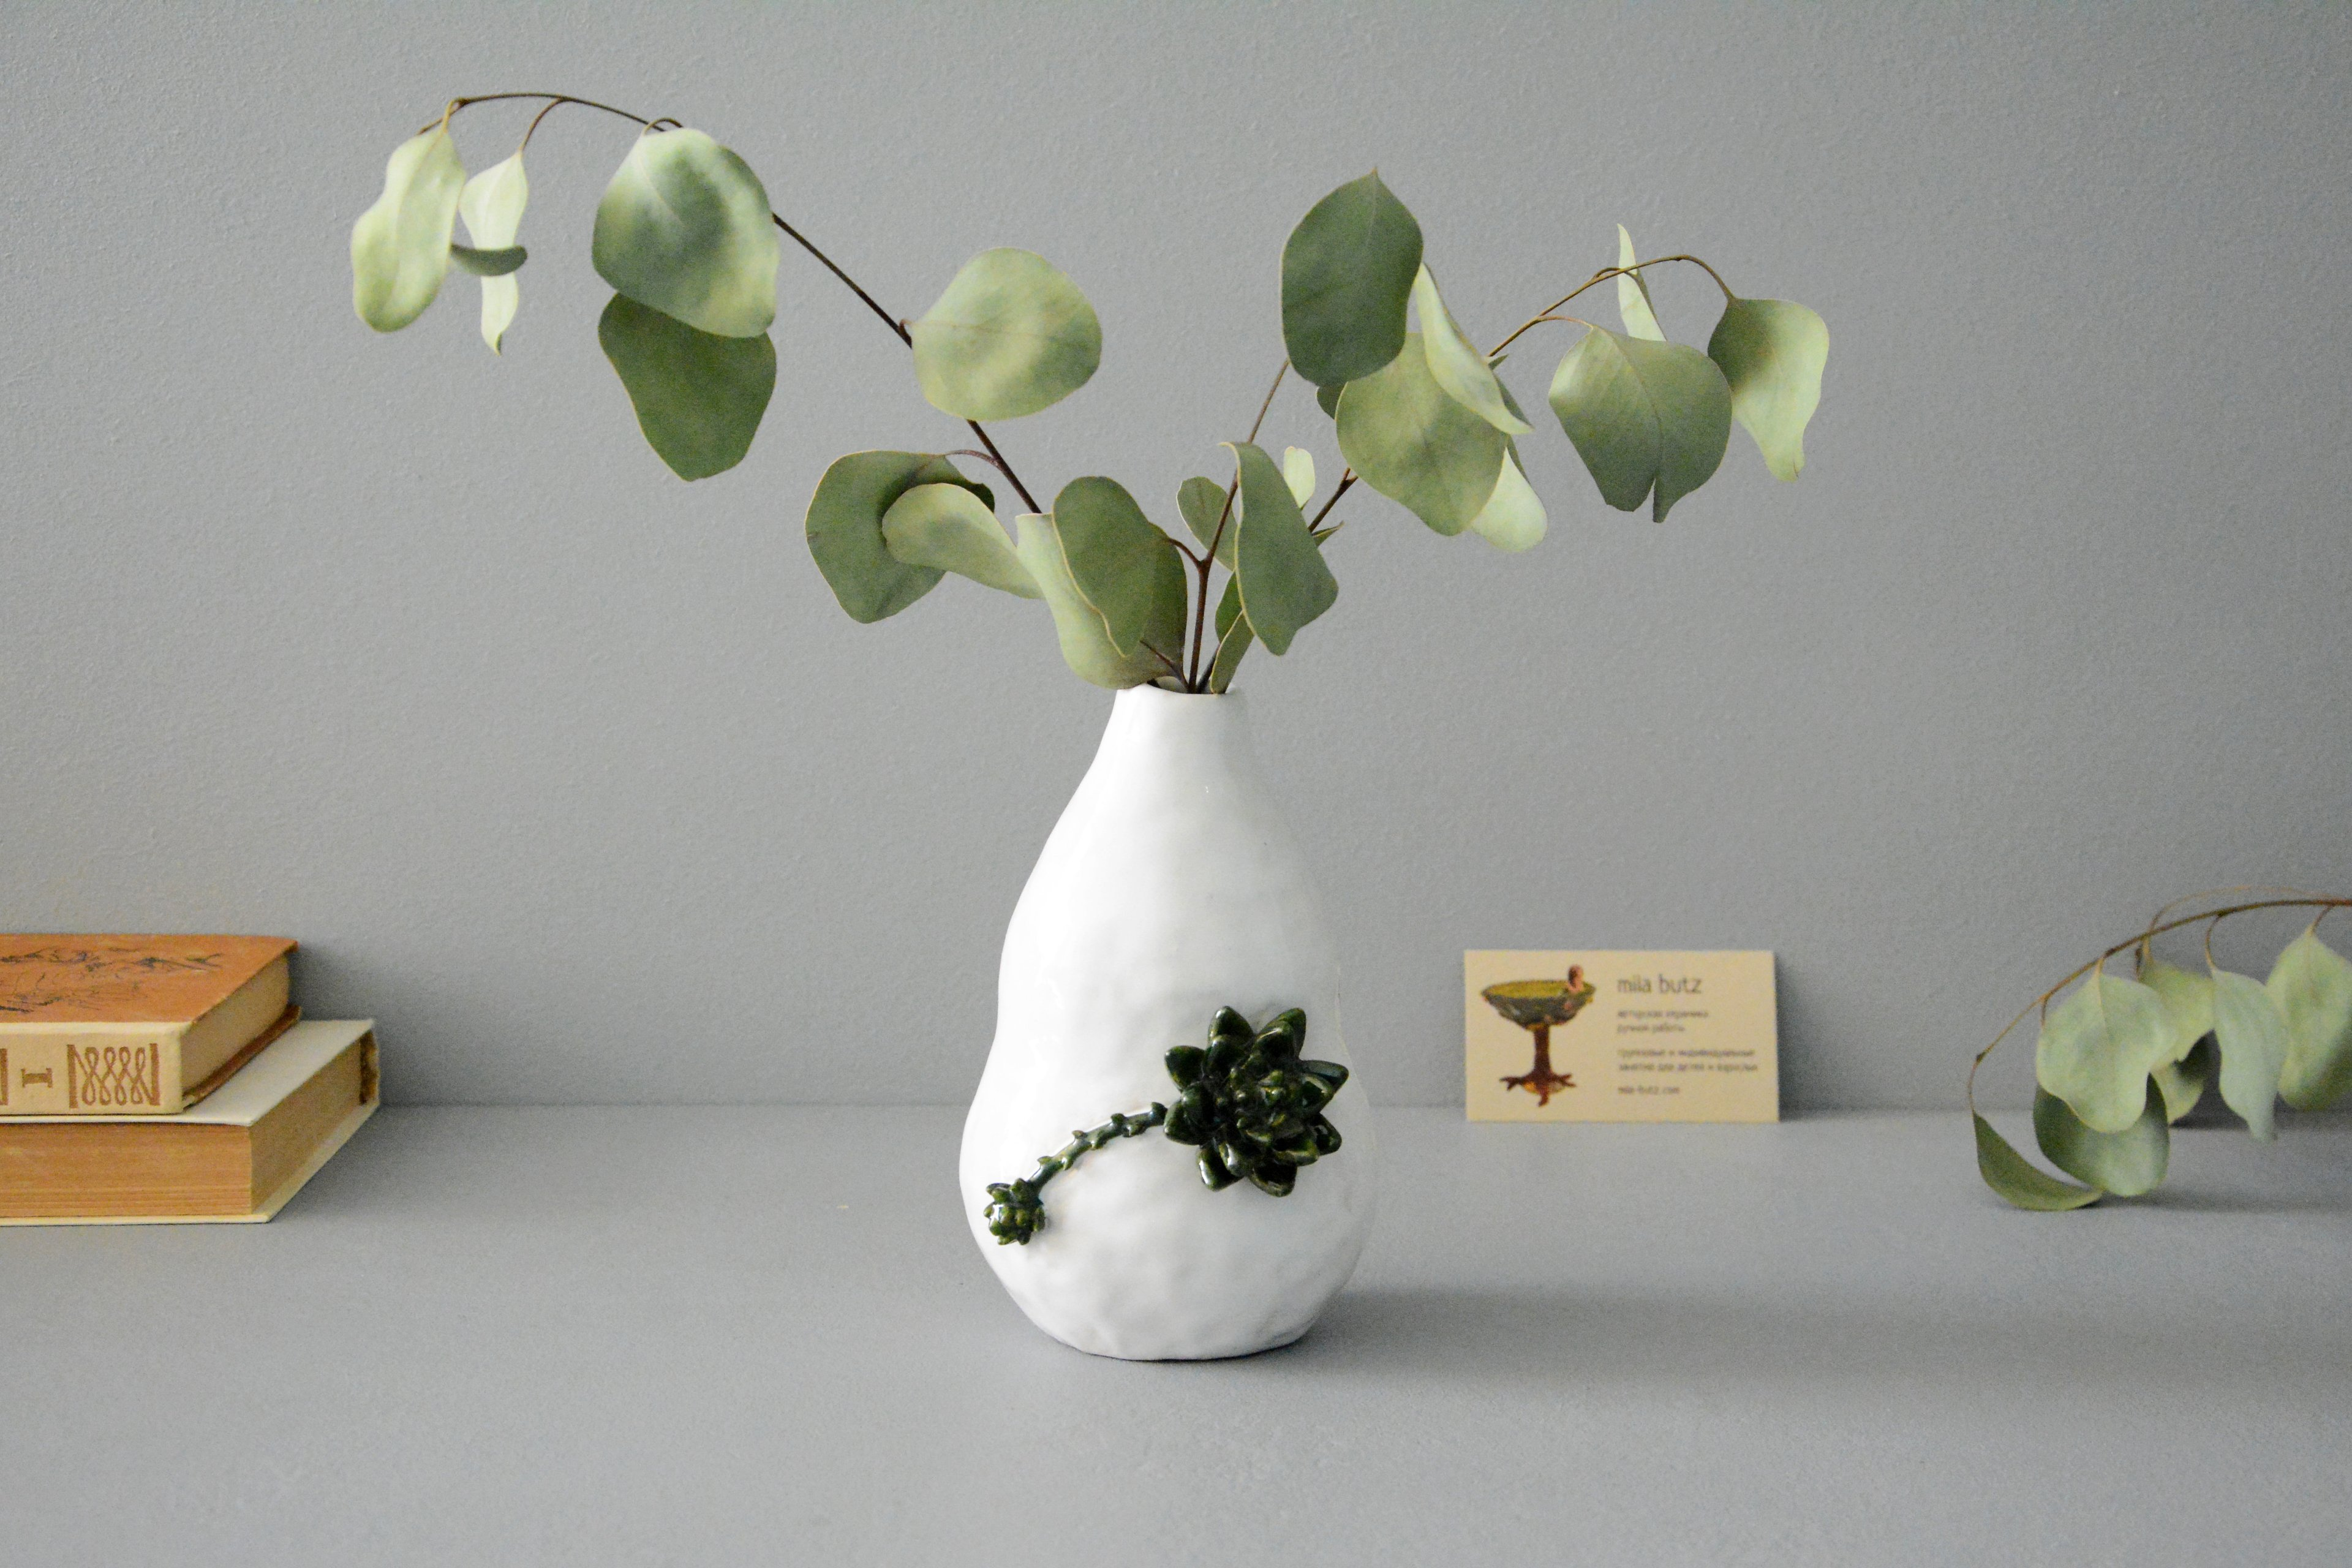 Decorative vase «Echeveria», height - 16 cm, color - white. Photo 1420.